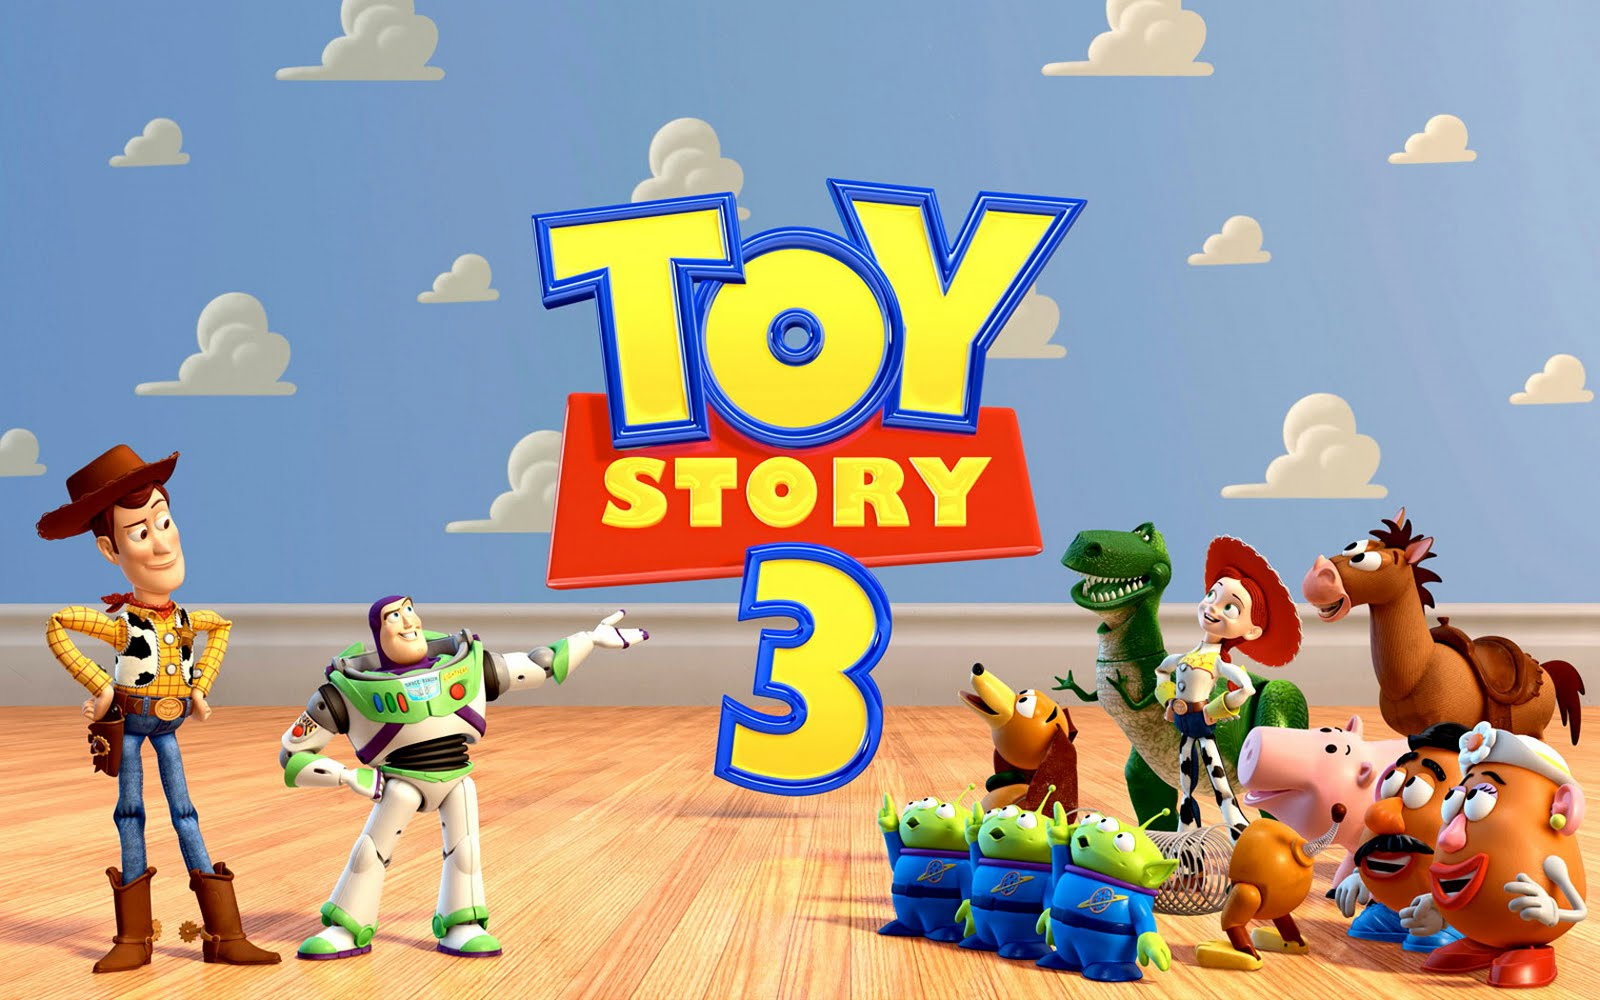 http://3.bp.blogspot.com/_08pG9DYVacg/TJEQb7FM-FI/AAAAAAAAAJg/qiuhKSo_KKw/s1600/toy-story-3-wallpaper-characters-logo.jpg